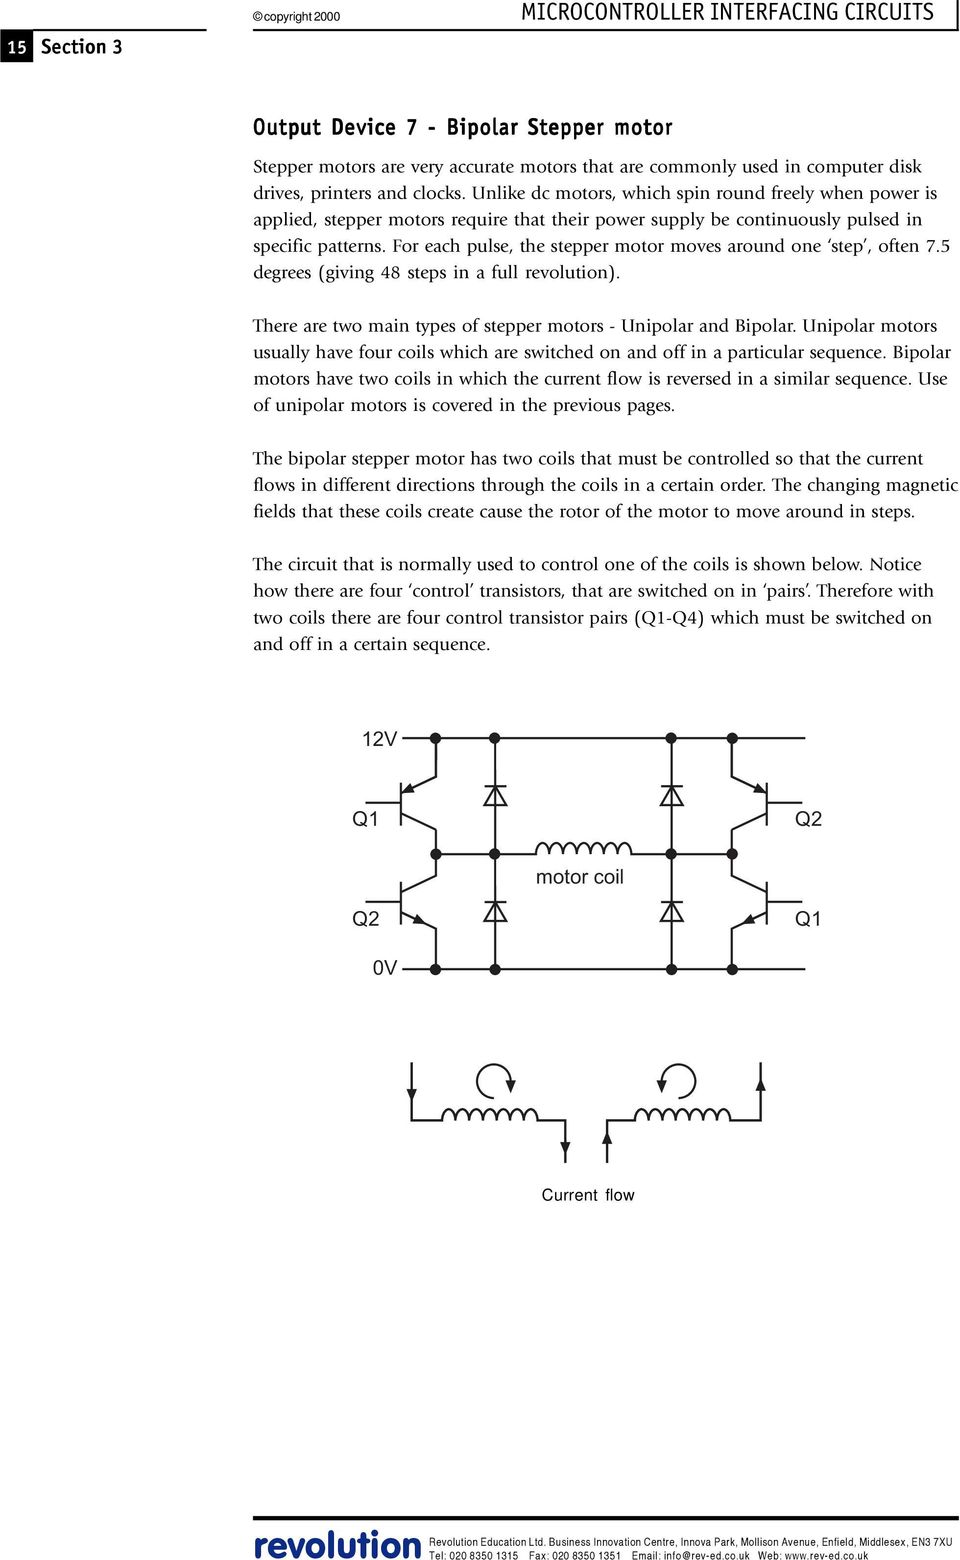 Microcontroller Interfacing Circuits Pdf Rs232 Line Booster Internal Circuit Diagram For Signal Flow Determination Each Pulse The Stepper Motor Moves Around One Step Often 75 Degrees